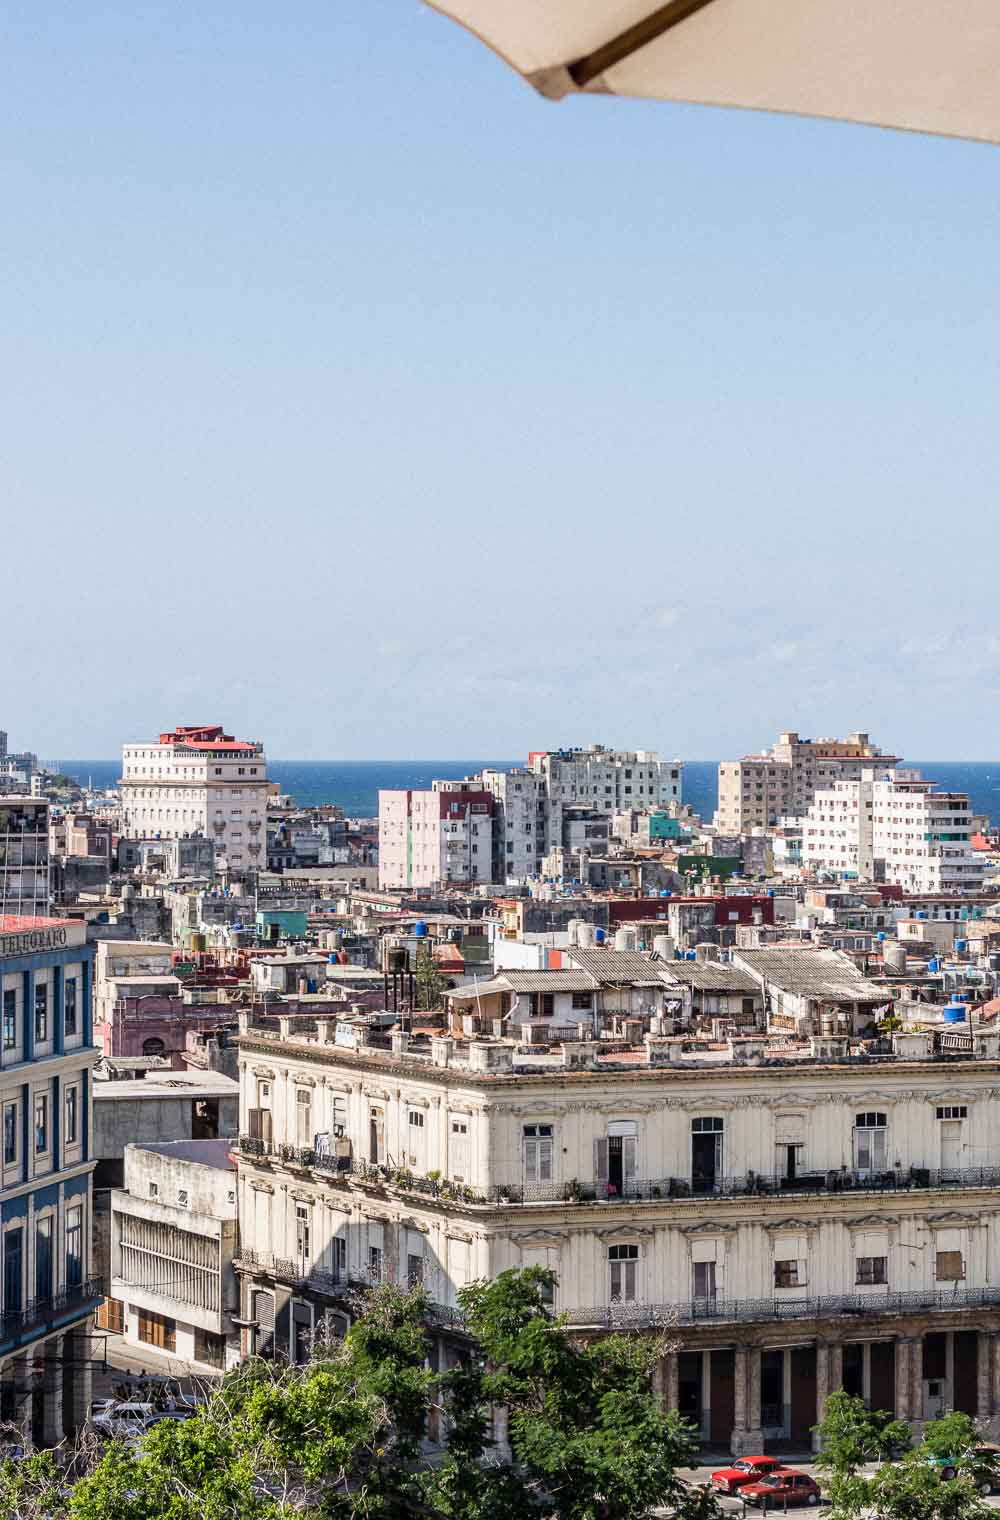 The city of Havana Cuba from a bird's eye view